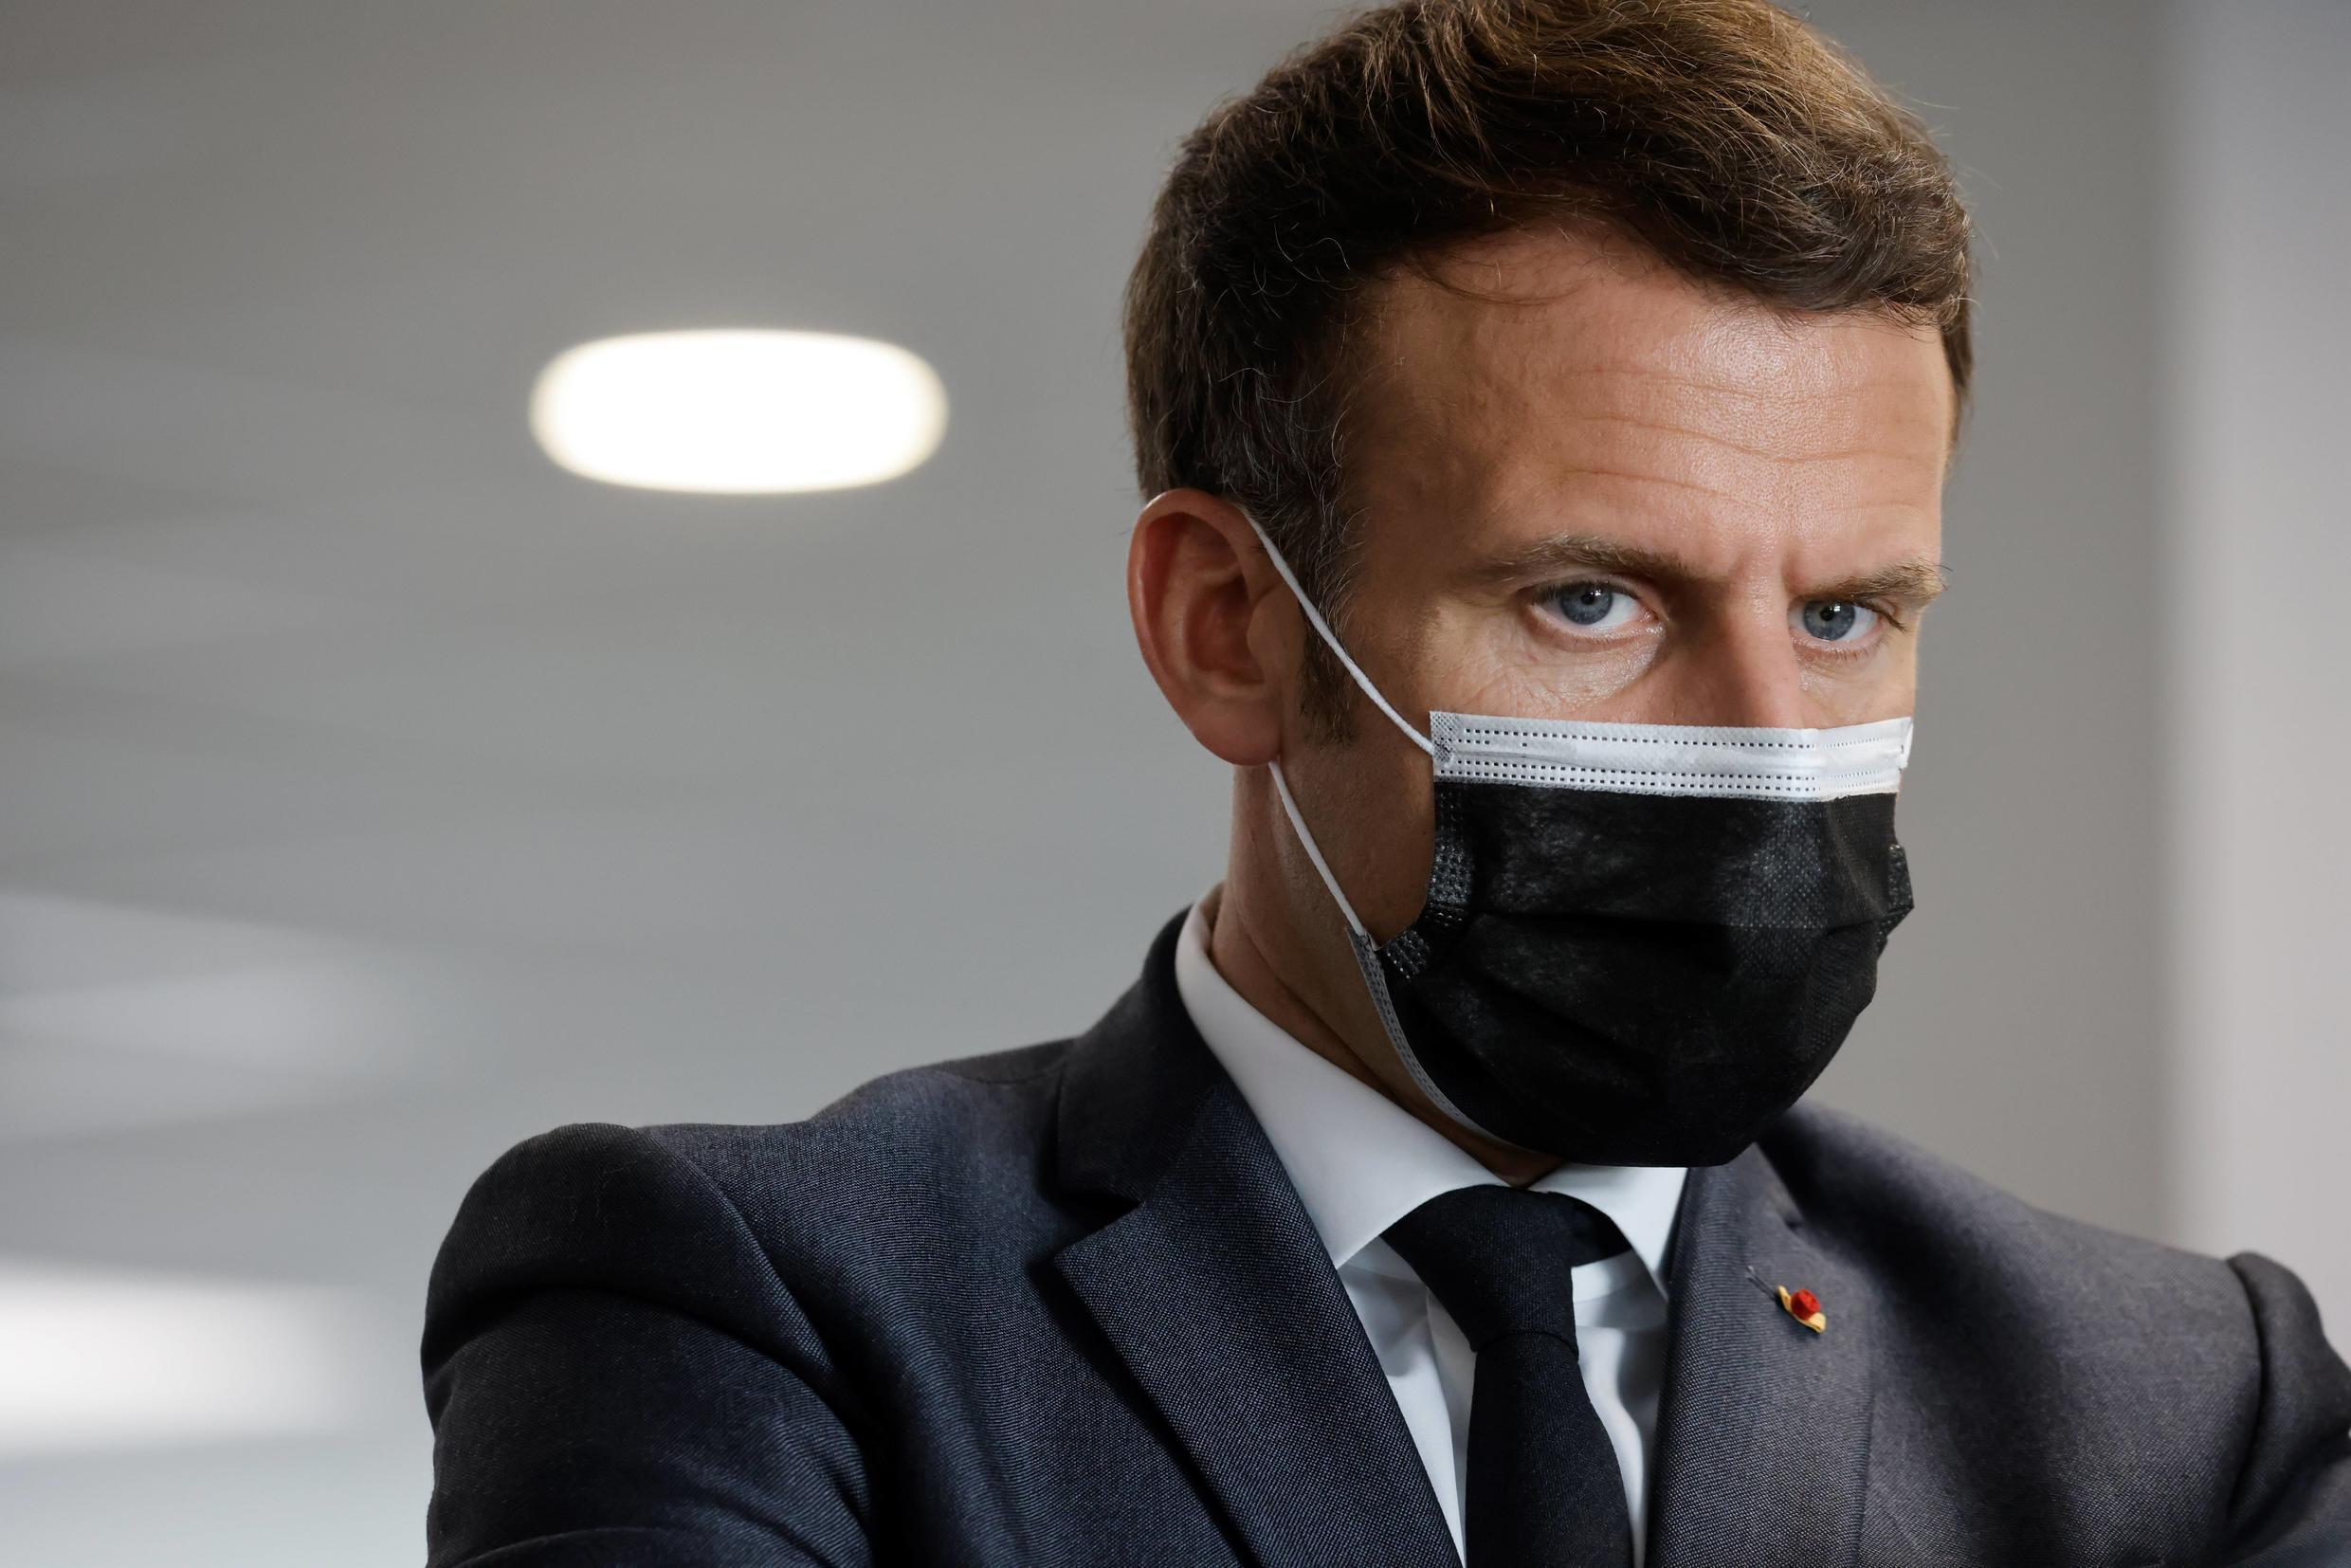 Macron has refused to apologise for his handling of the pandemic